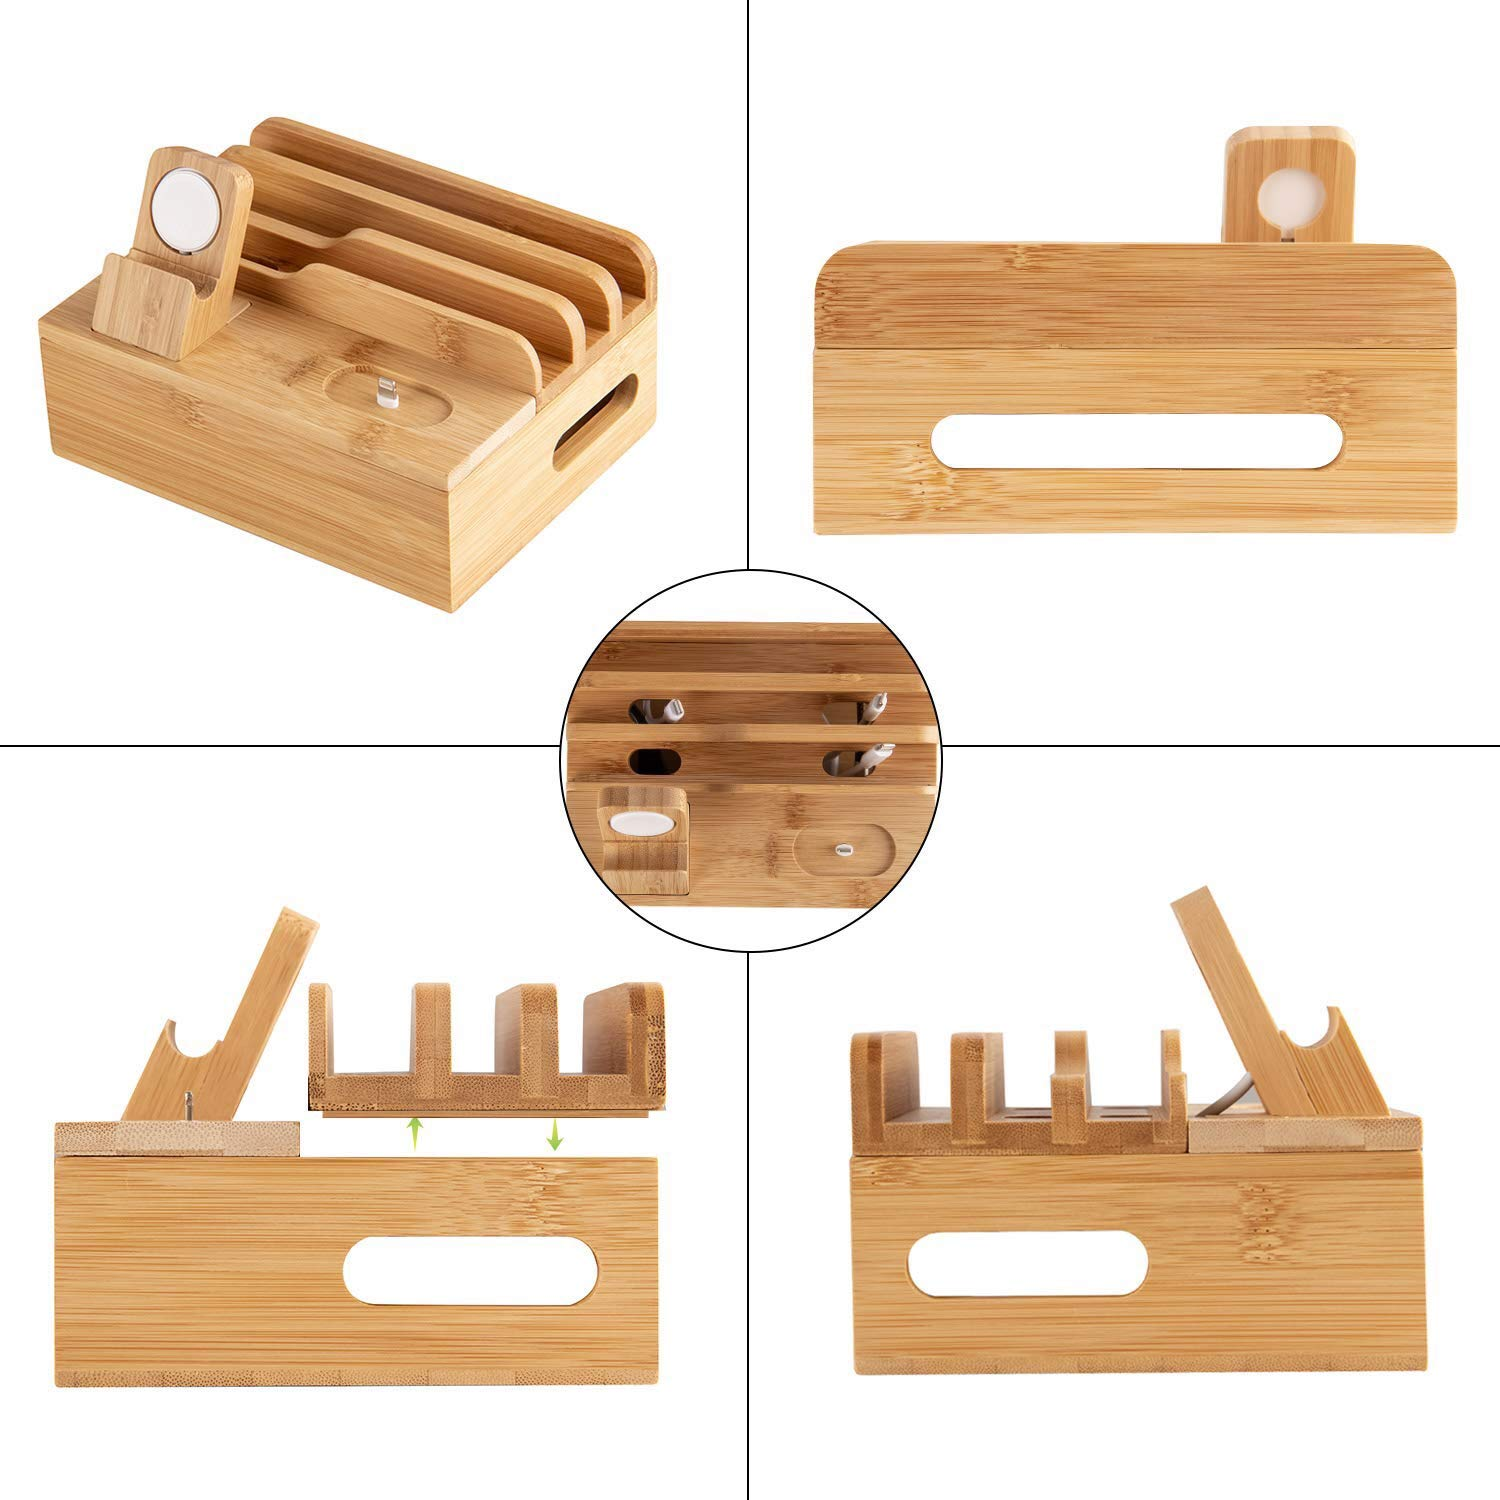 Multiple Device Bamboo Wood Docking Station and Organizer with 5 Port Universal USB Charger Including Watch Stand and airpods Stand. by EPOco